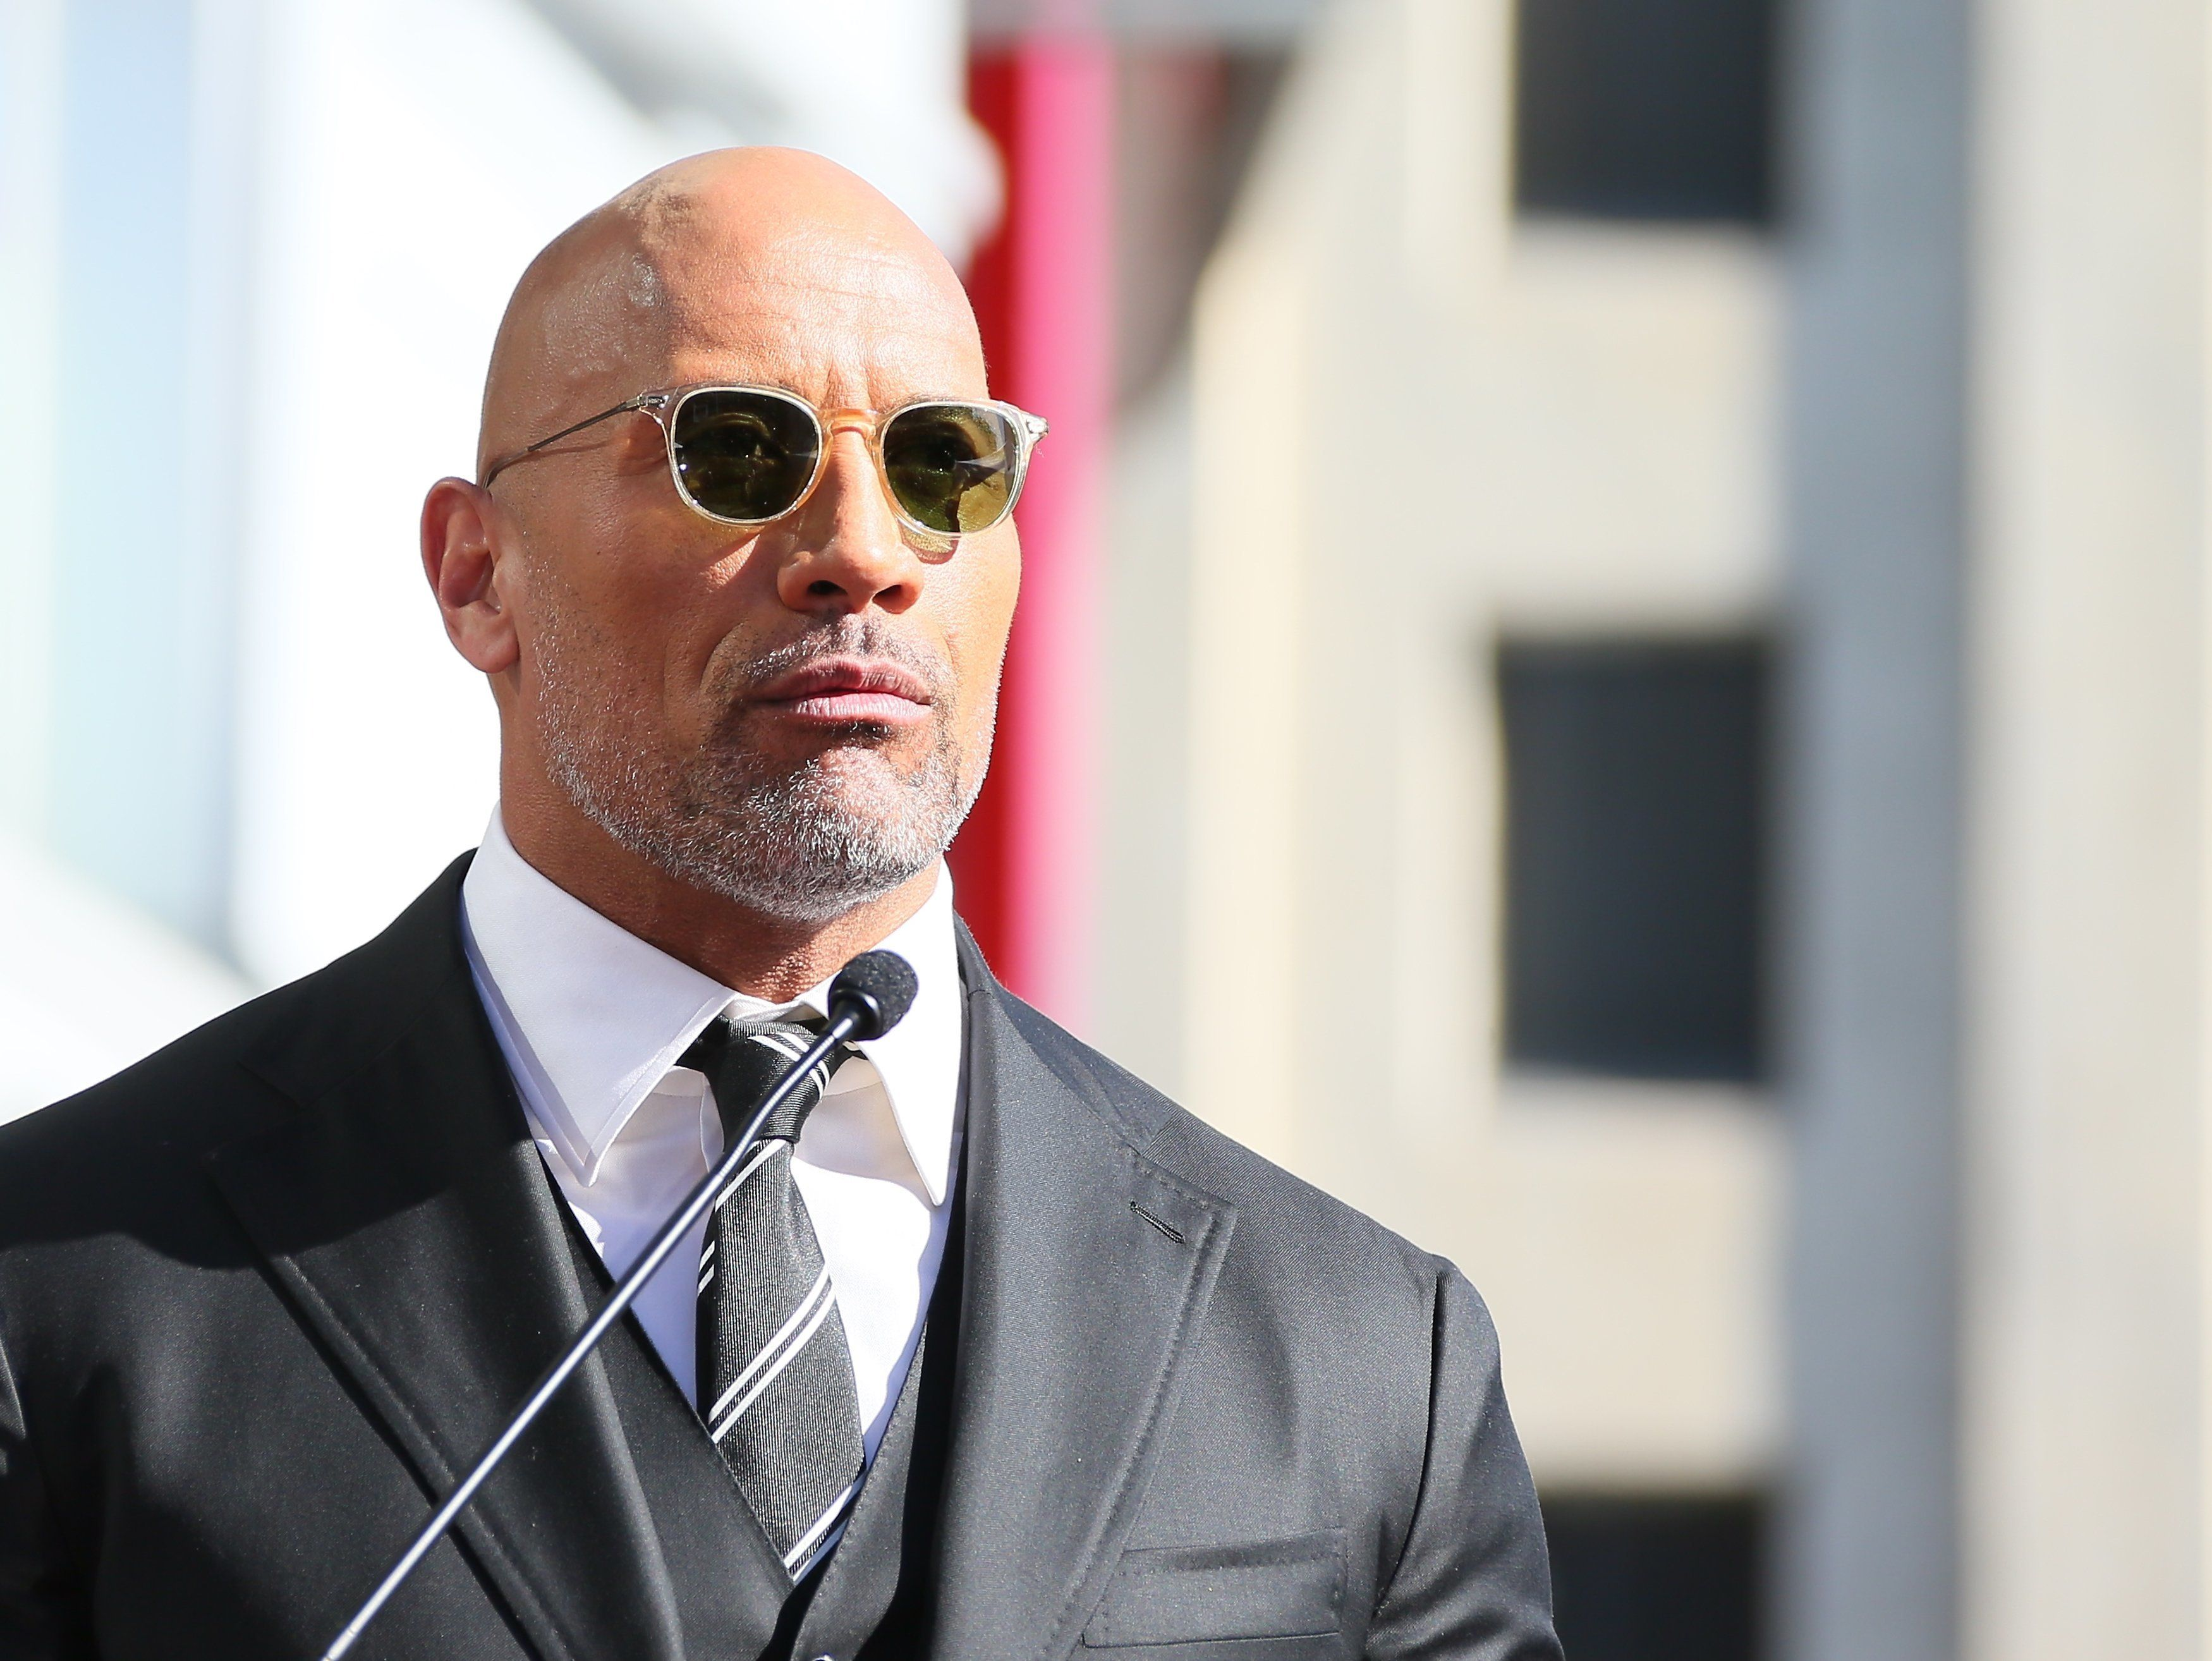 LOS ANGELES, CA - DECEMBER 13: Dwayne Johnson is honored with Star On The Hollywood Walk Of Fame on December 13, 2017 in Los Angeles, California.(Photo by JB Lacroix/ WireImage)